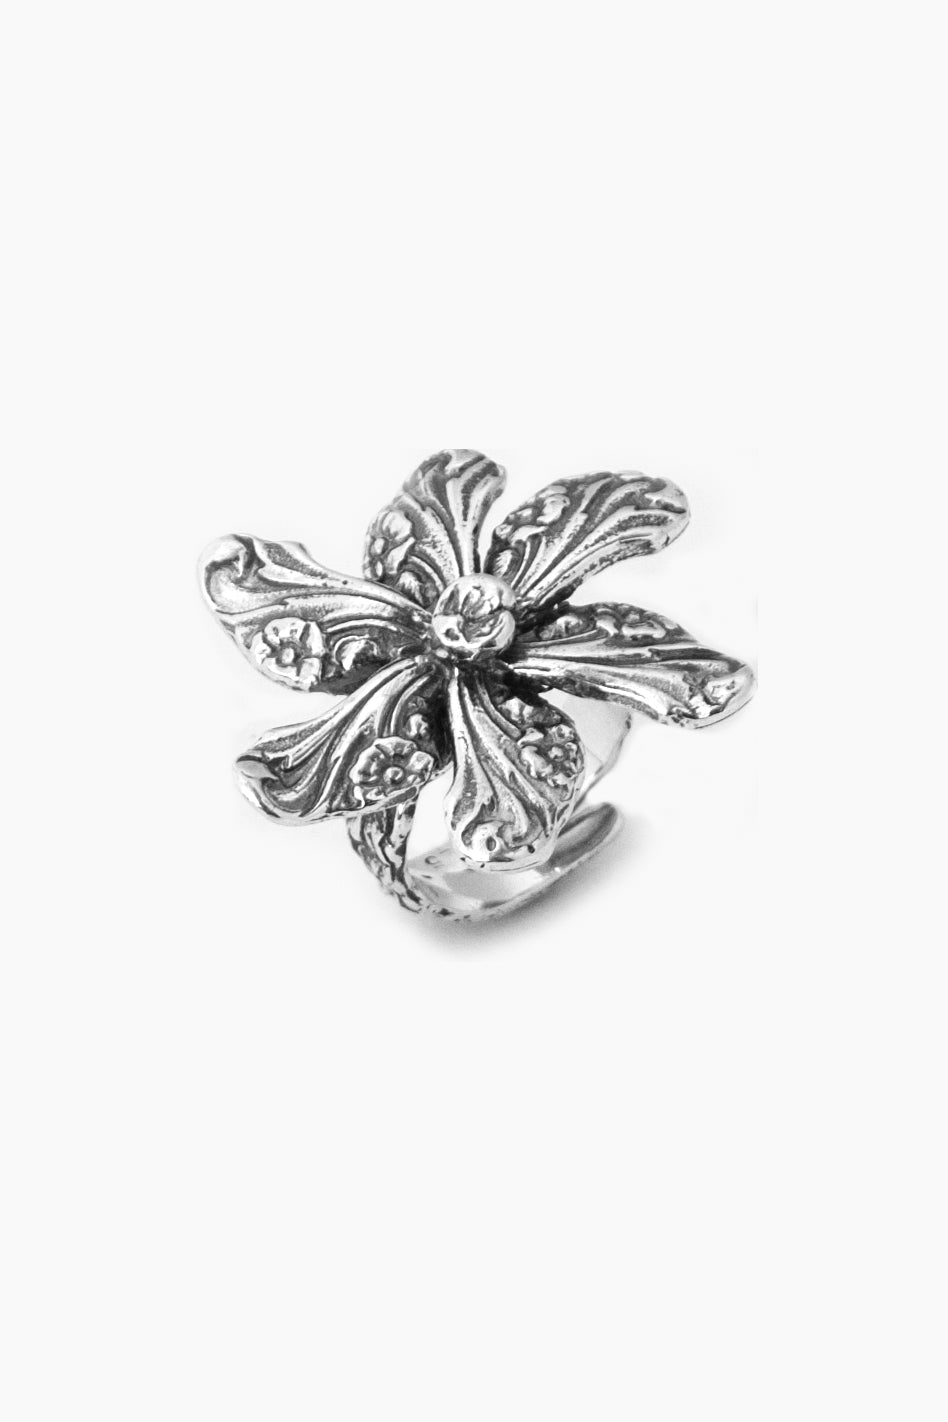 Georgia Sterling Silver Ring - Silver Spoon Jewelry